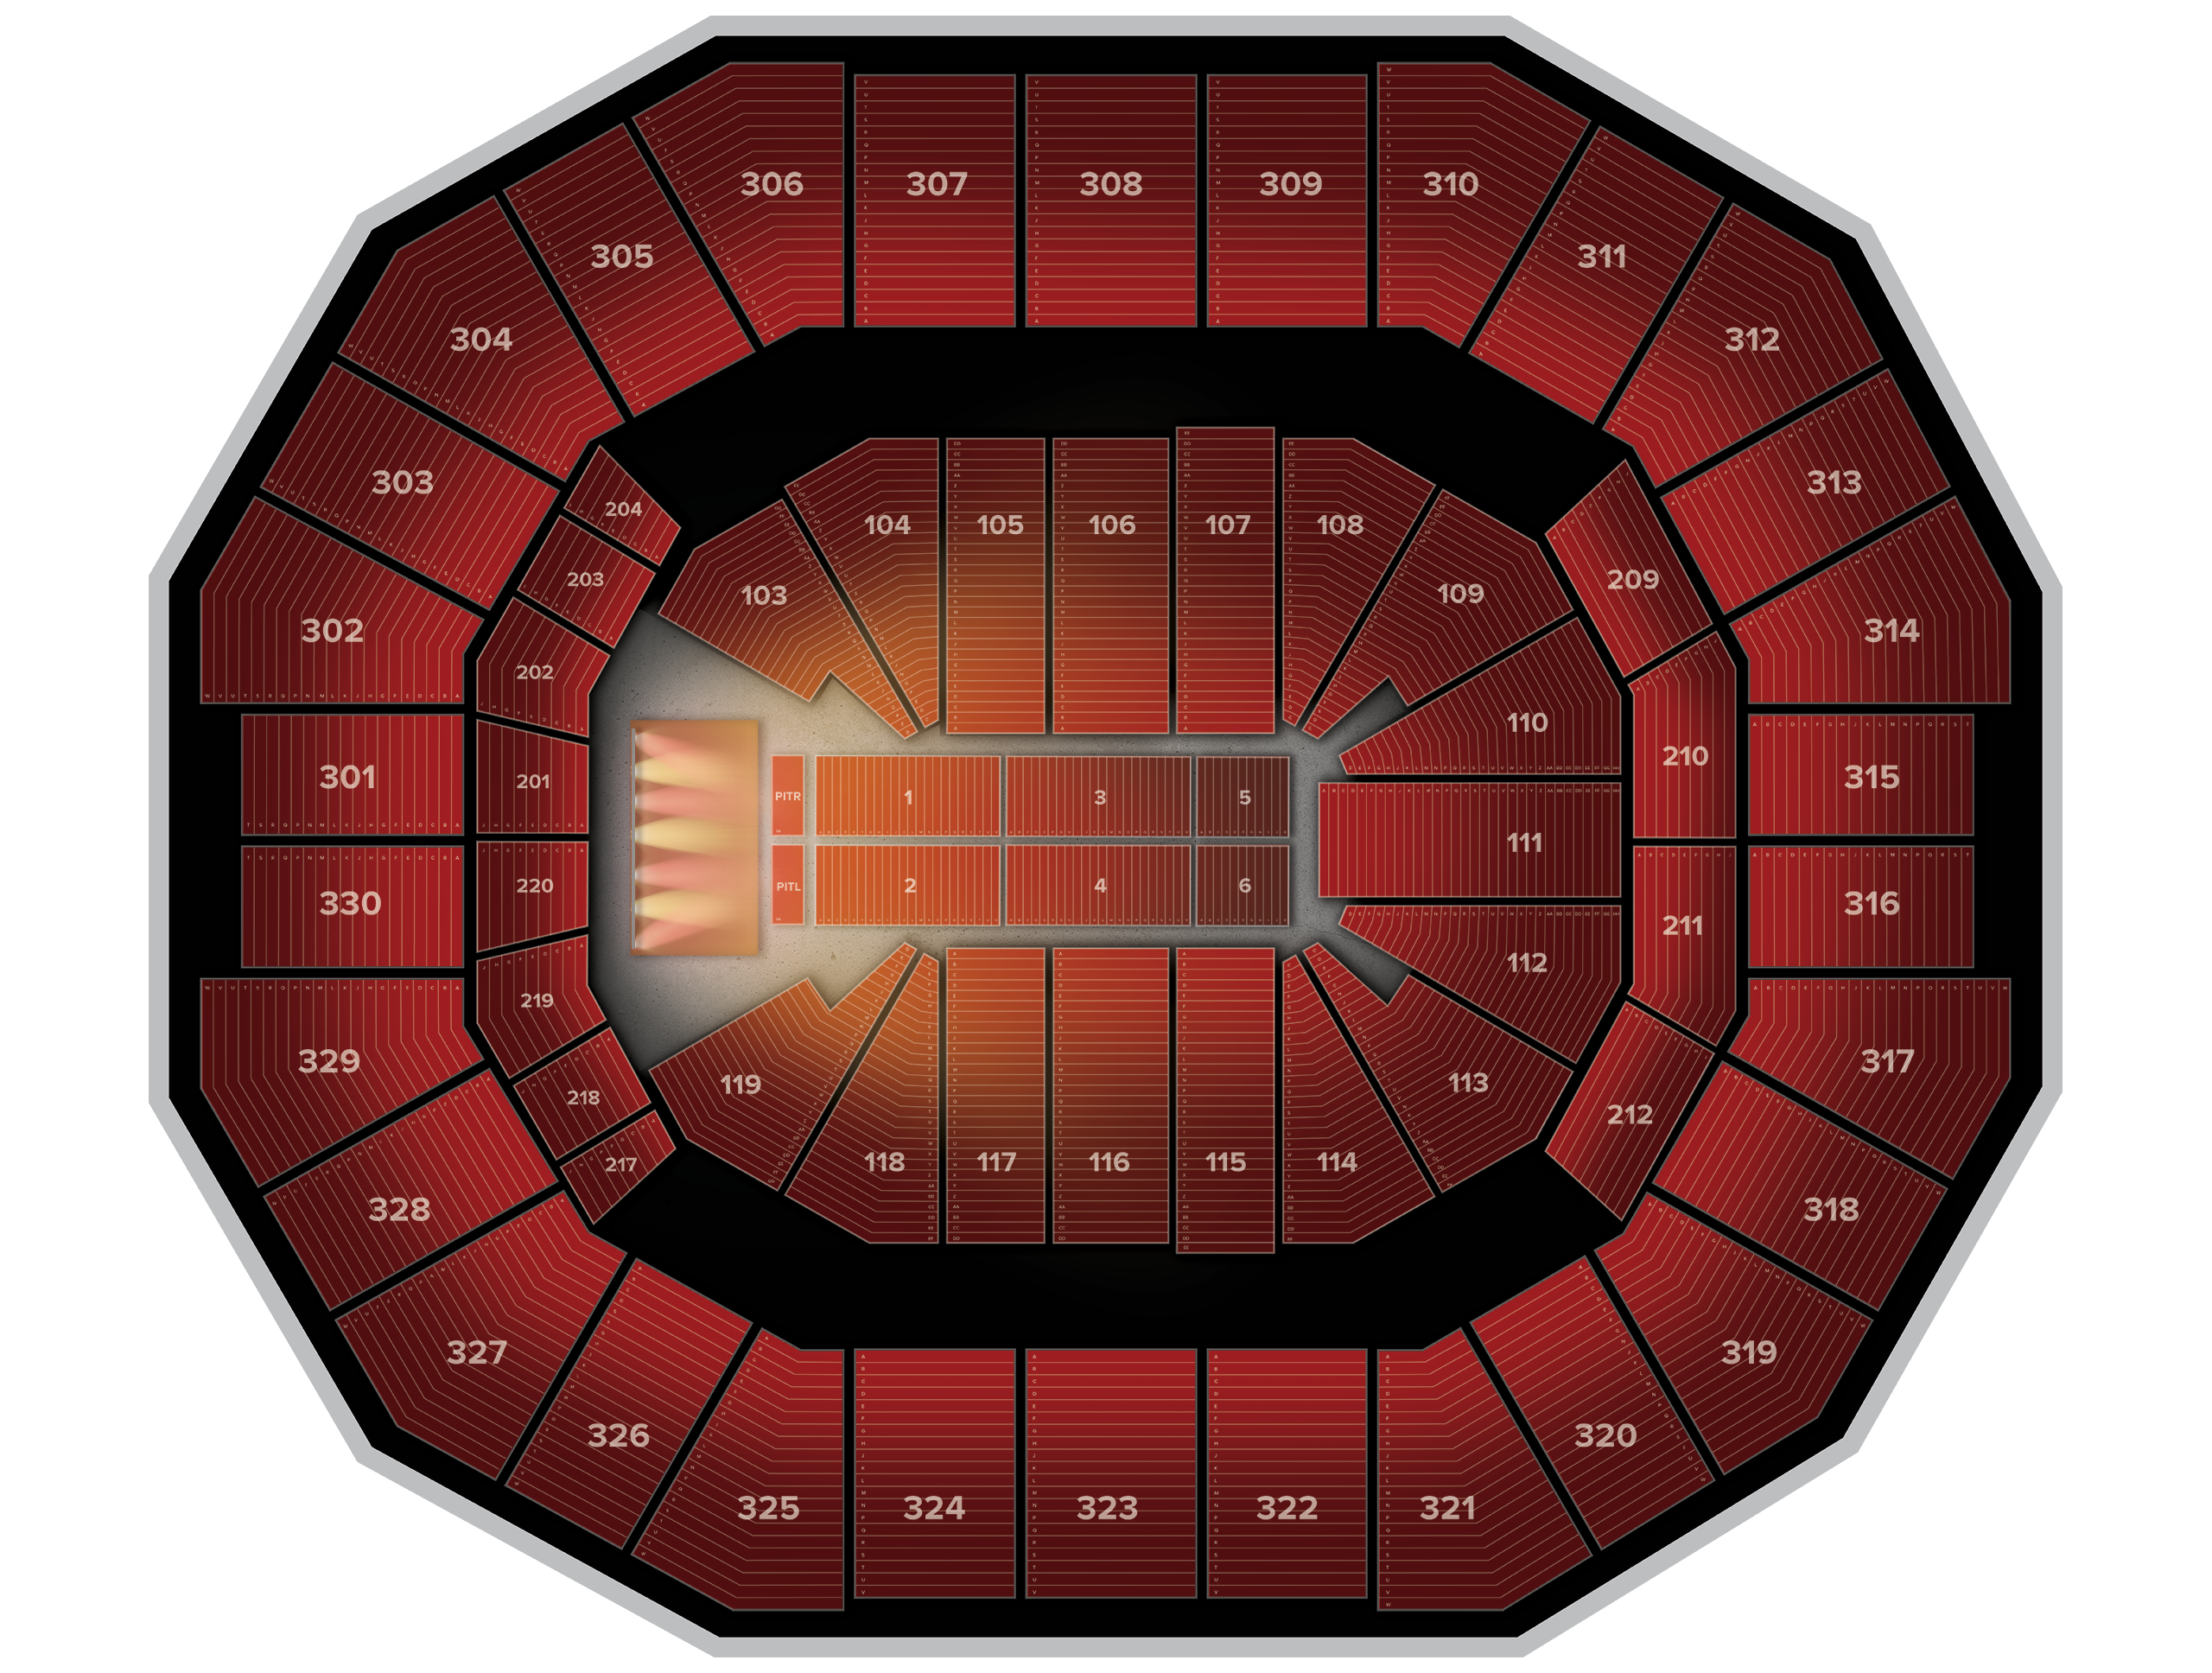 KFC Yum! Center Tickets